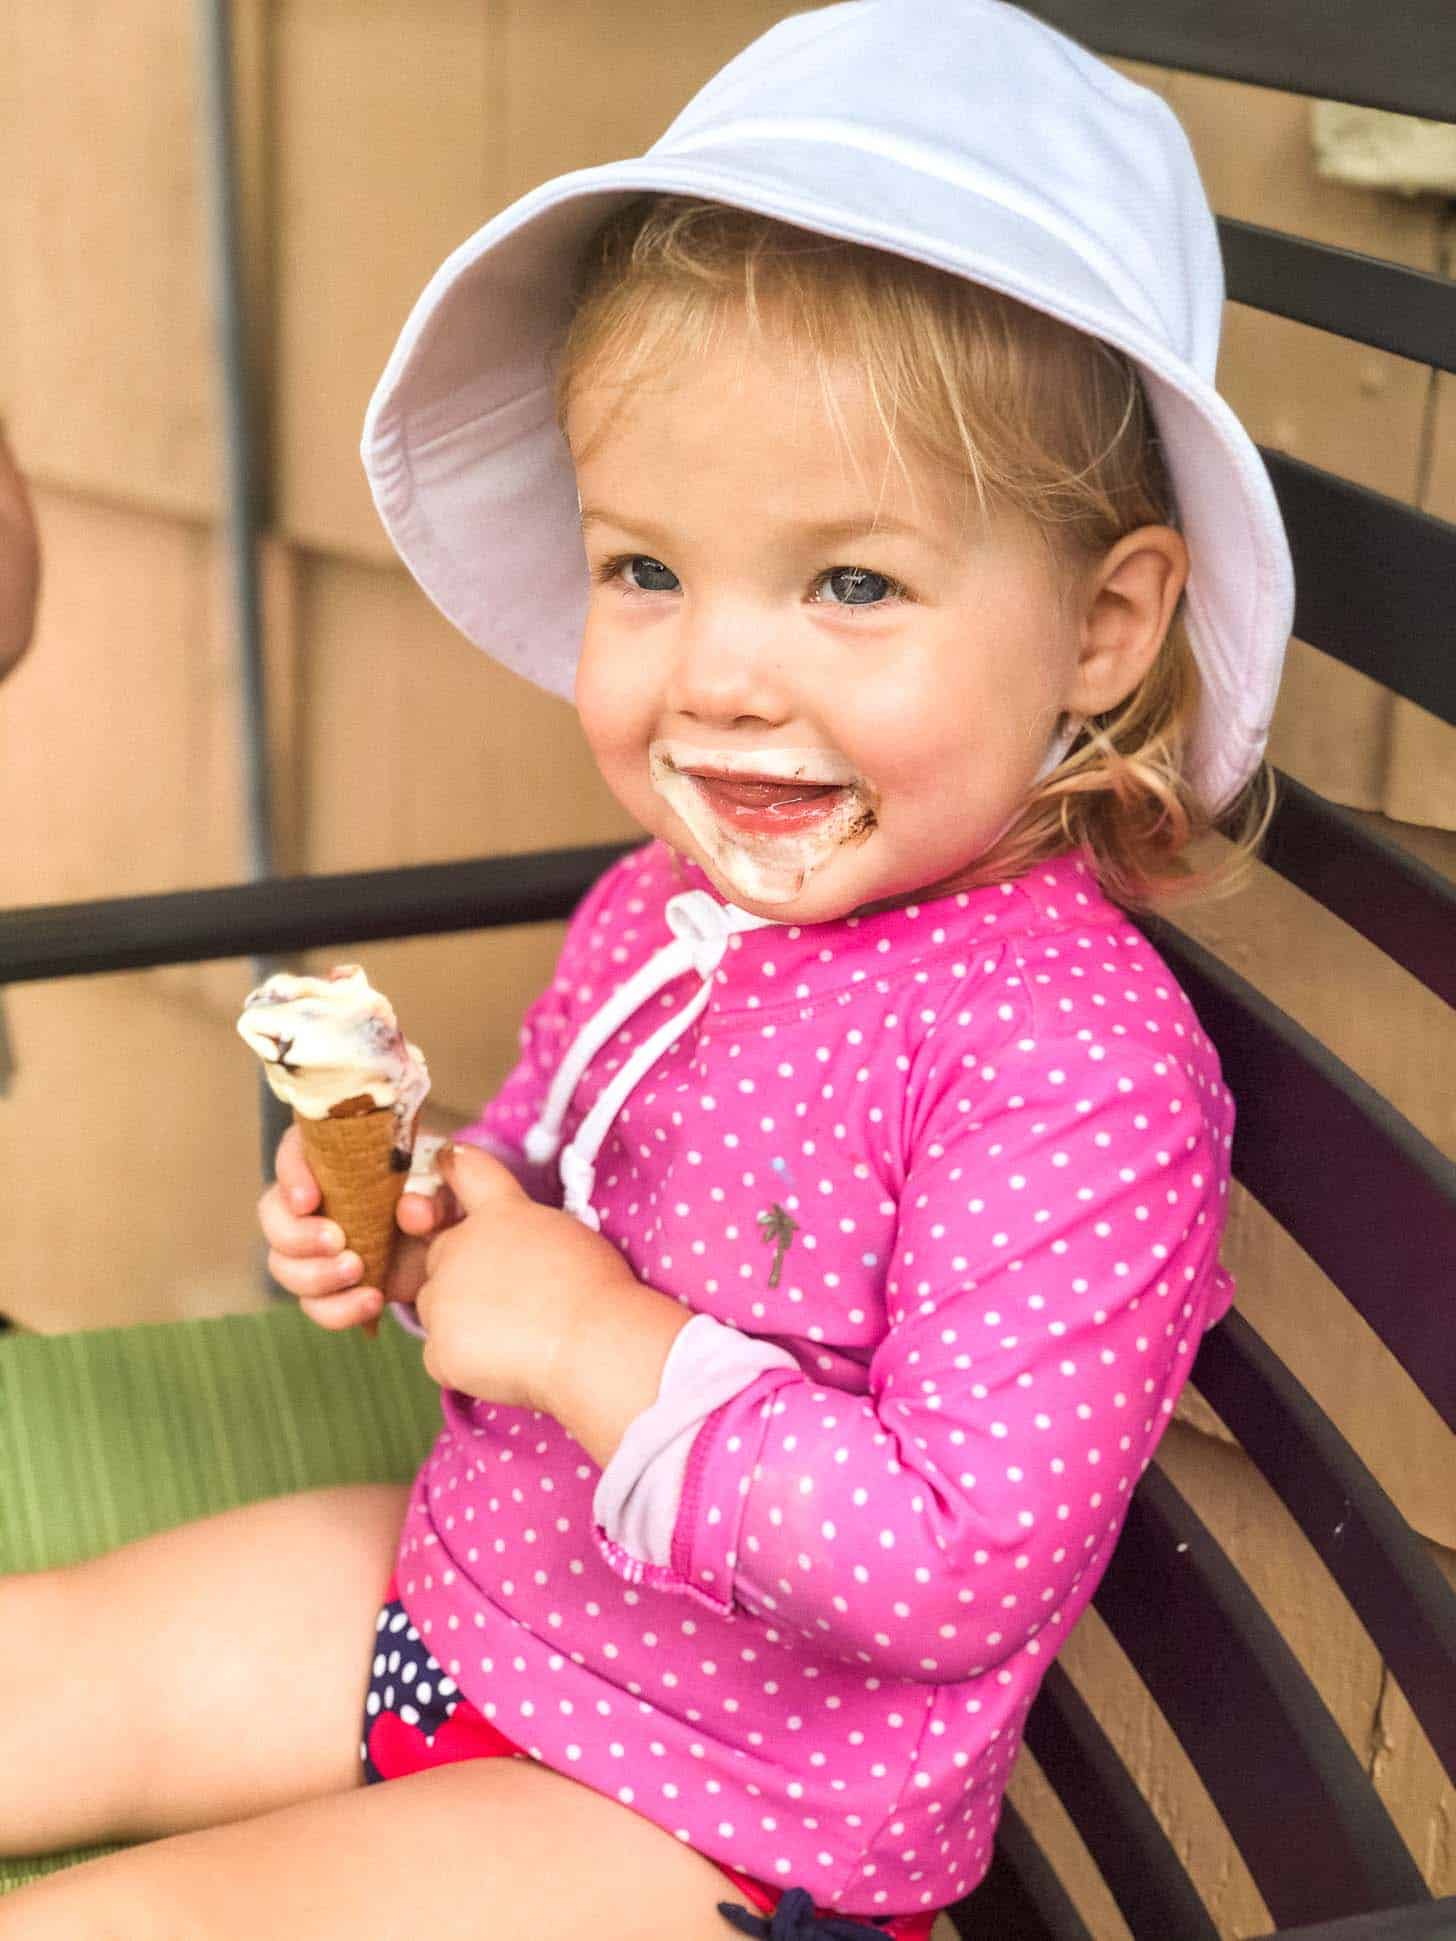 June with an ice cream cone in her hand